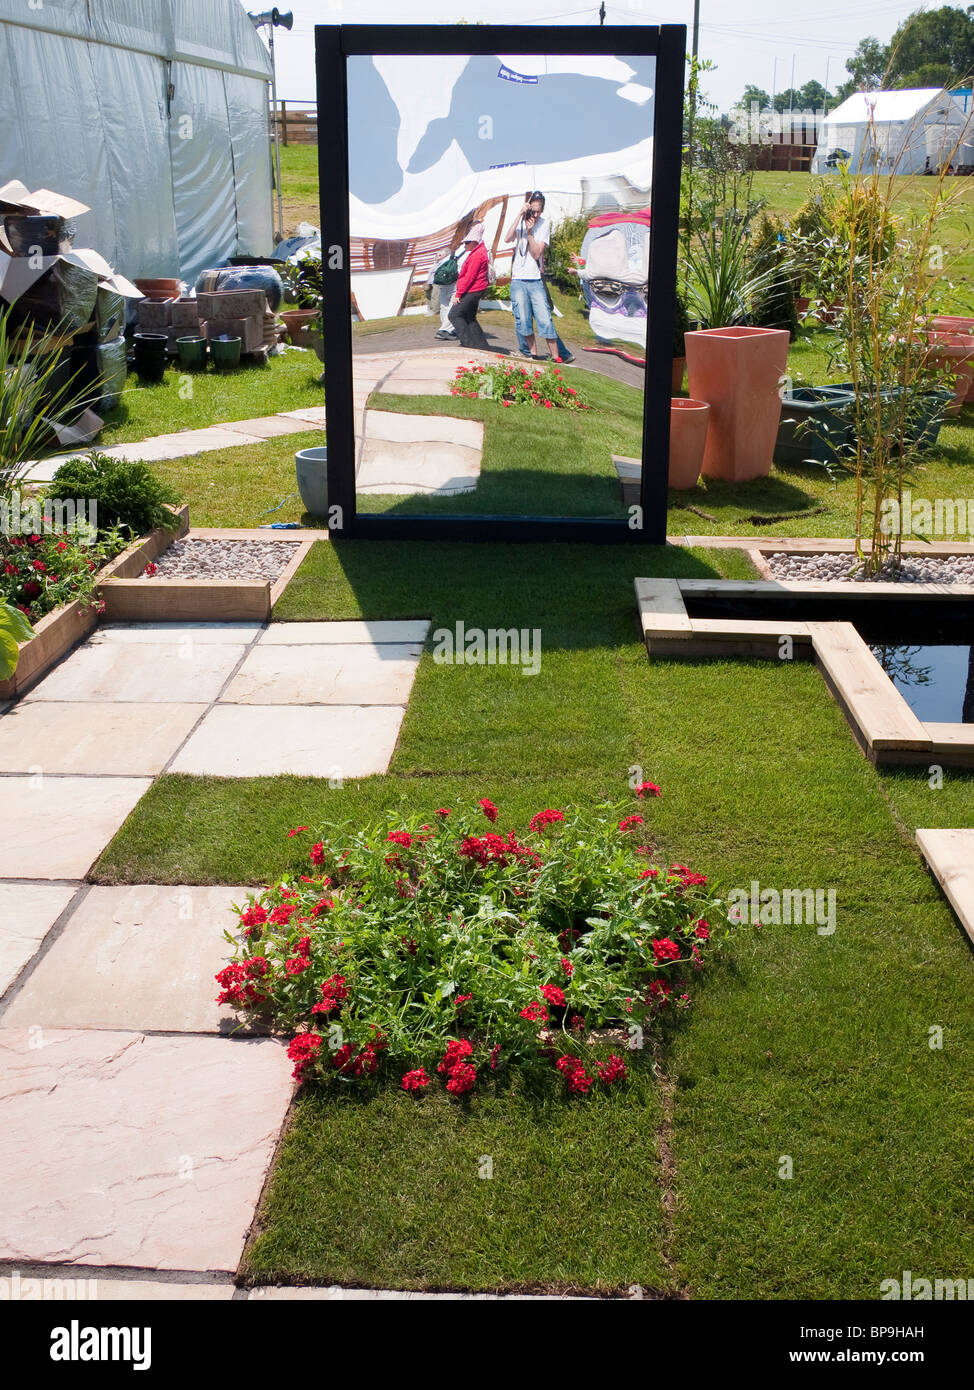 Modern Garden Design With Mirror Scotland